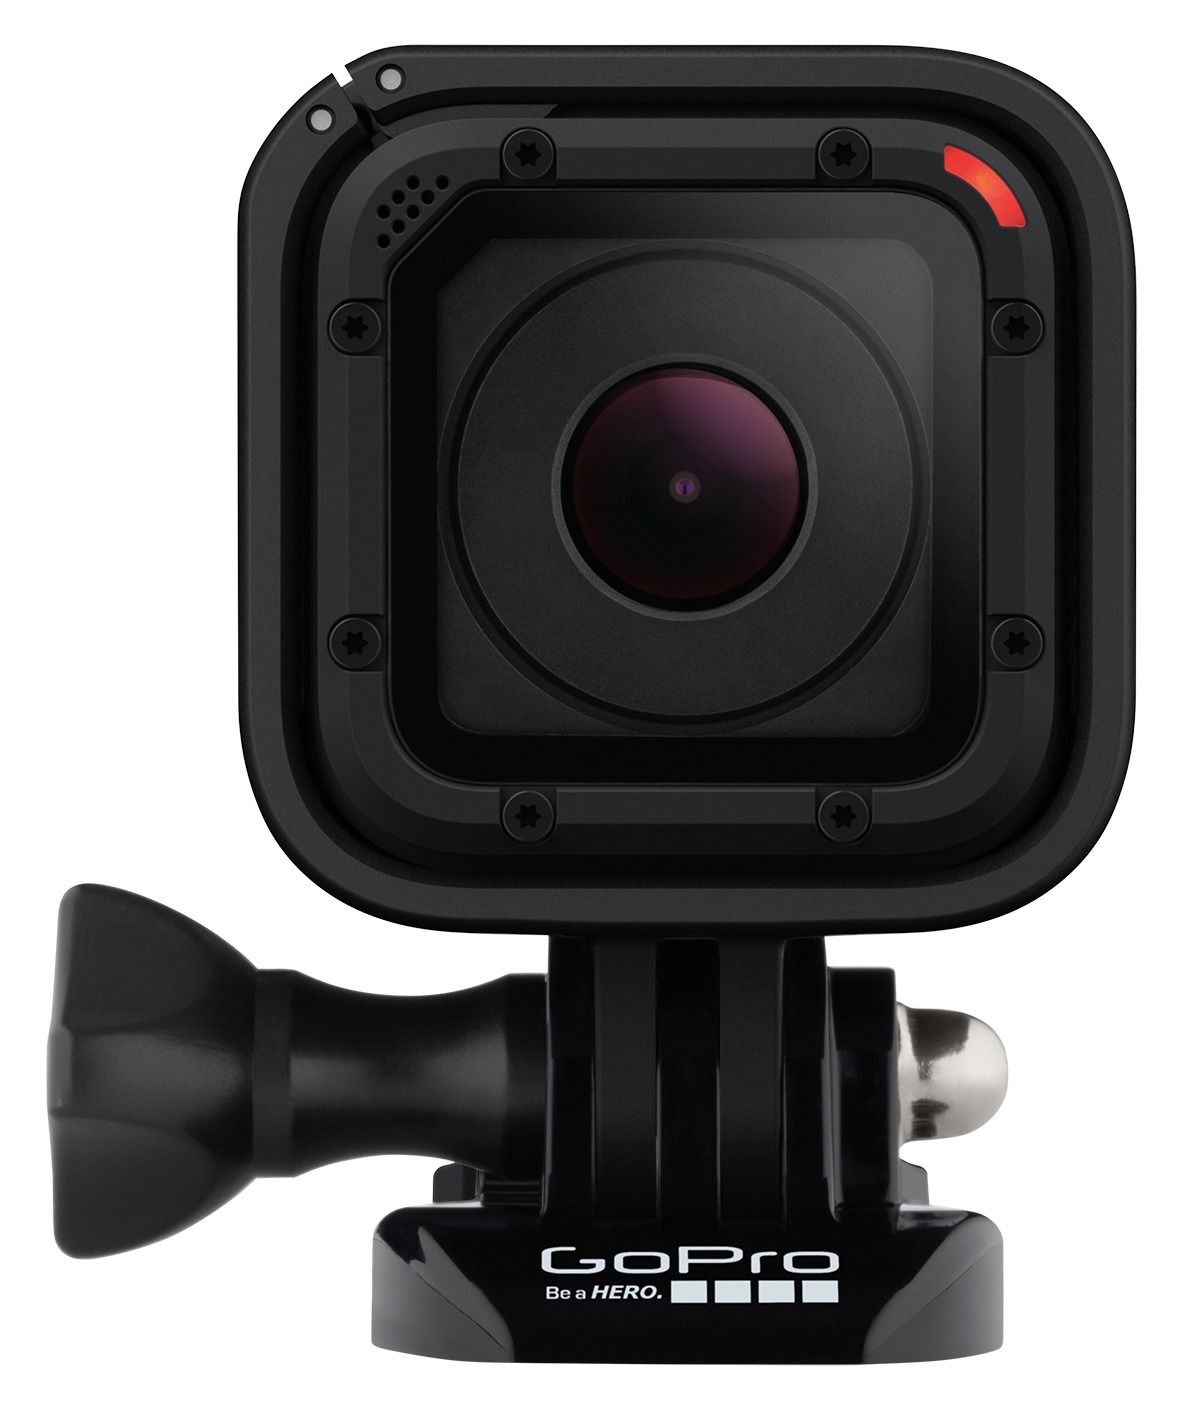 hero 4 session instructions